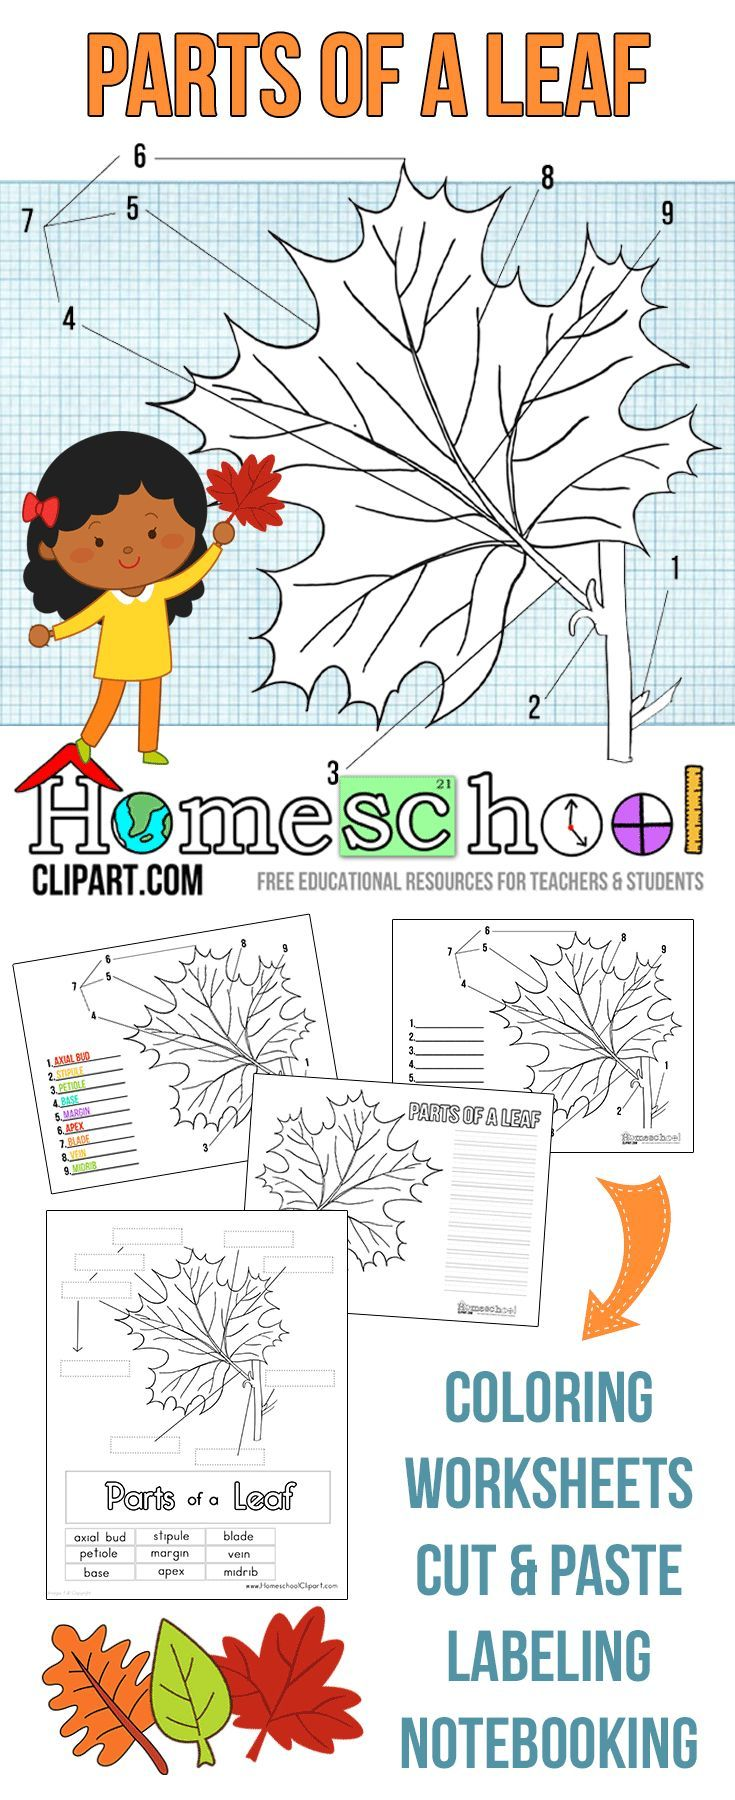 Free Worksheet Homeschool Science Worksheets 1000 images about homeschool science botany on pinterest free parts of a leaf notebook worksheets coloring pages labeling charts cut